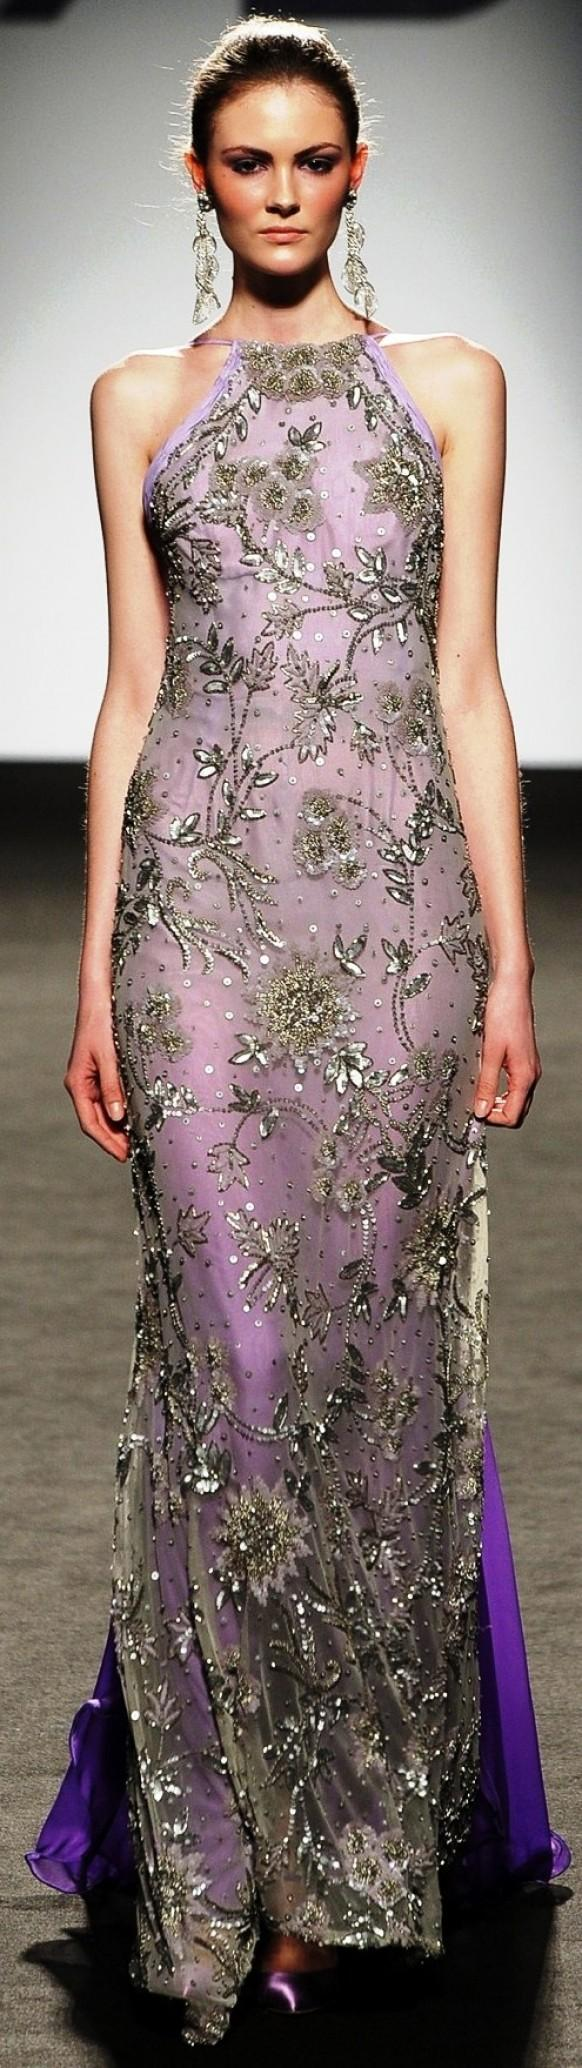 Vestir bellezas pinterest gowns lilacs and clothes